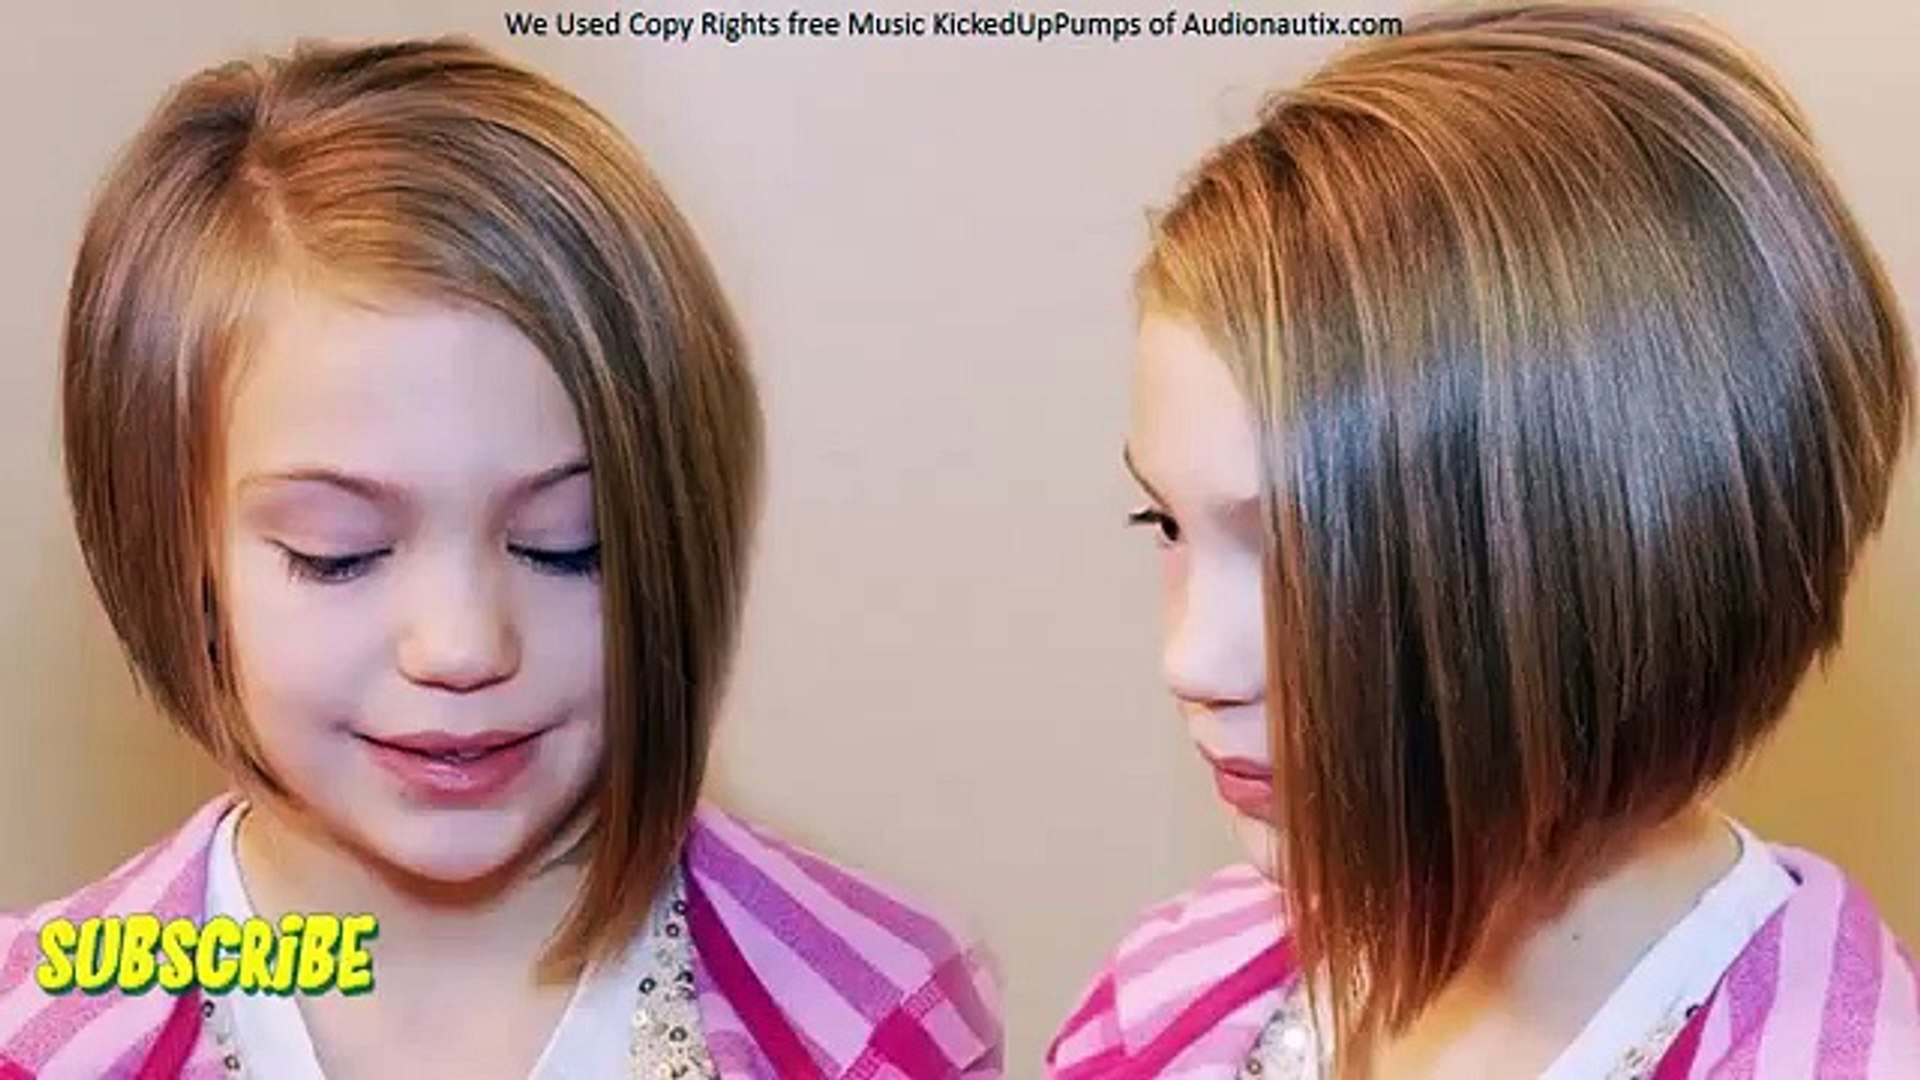 Hairstyles For 11 Year Old Girls - New Generation Hairstyles